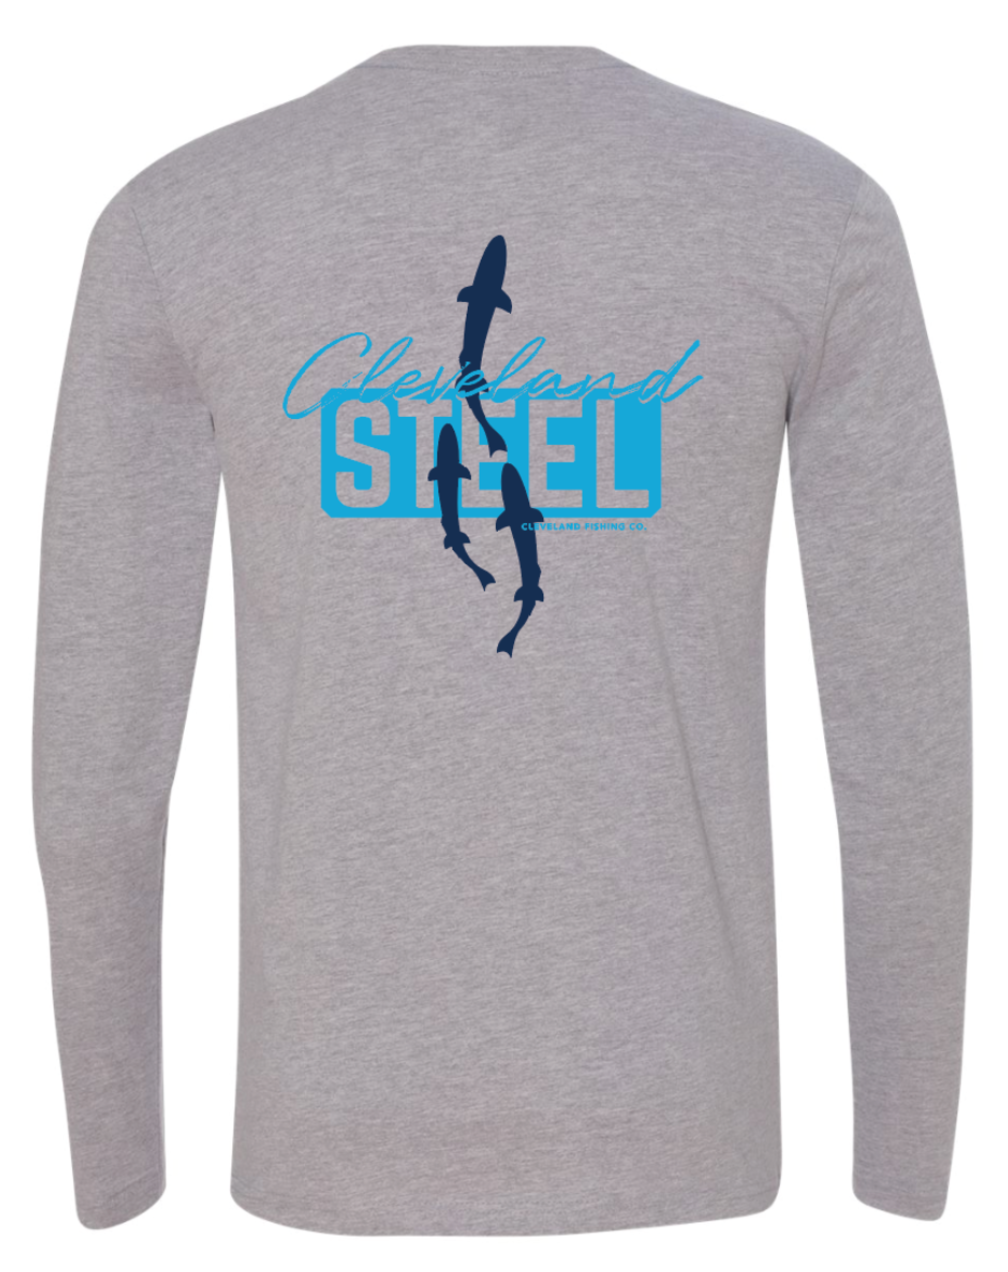 Cleveland Steel - Long Sleeve Tee - Grey